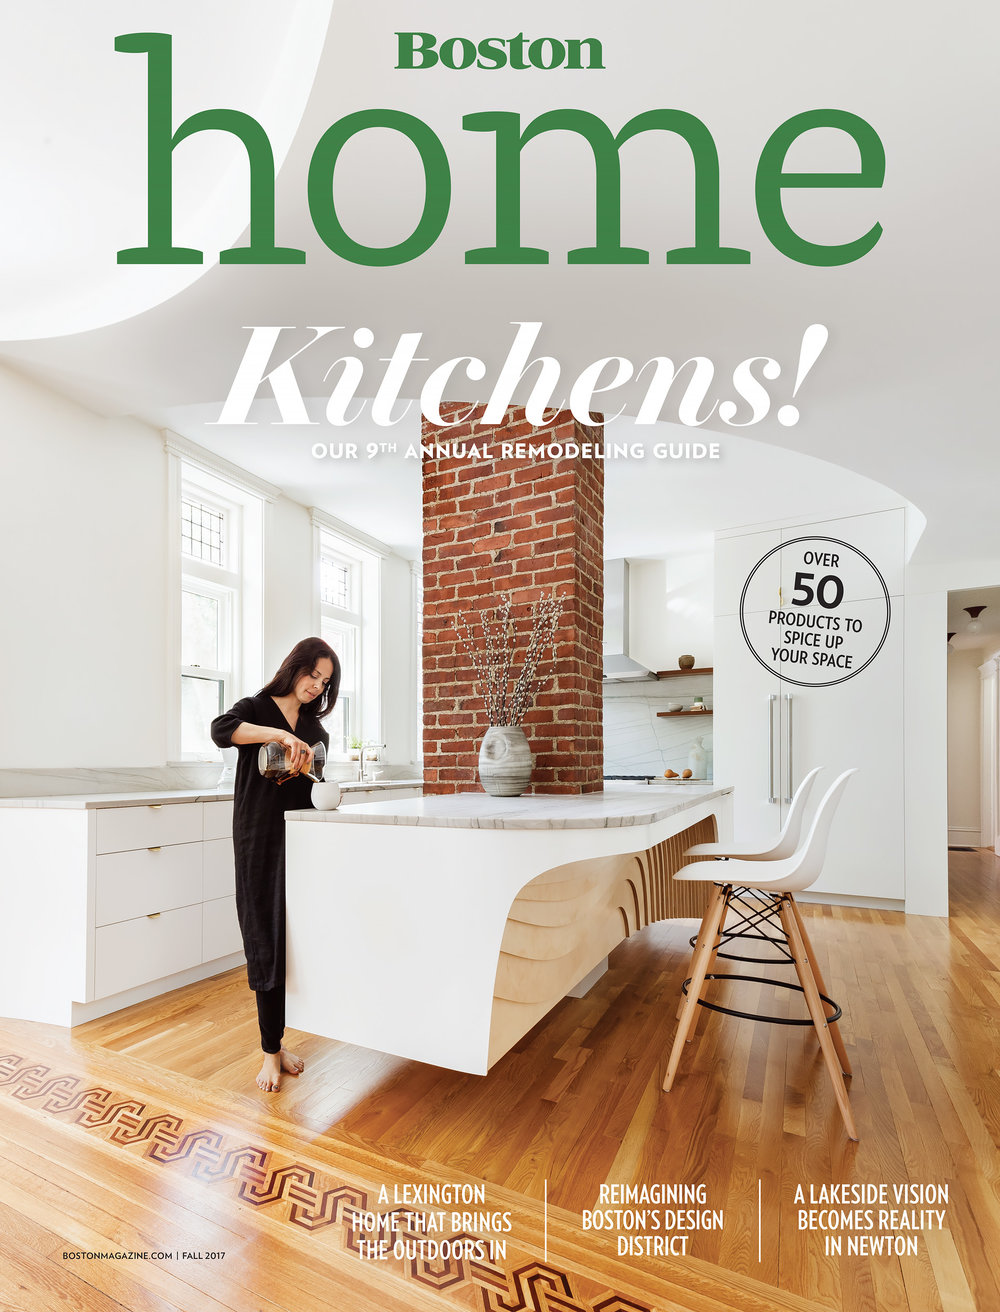 Boston Home - Kitchens 2017 Cover